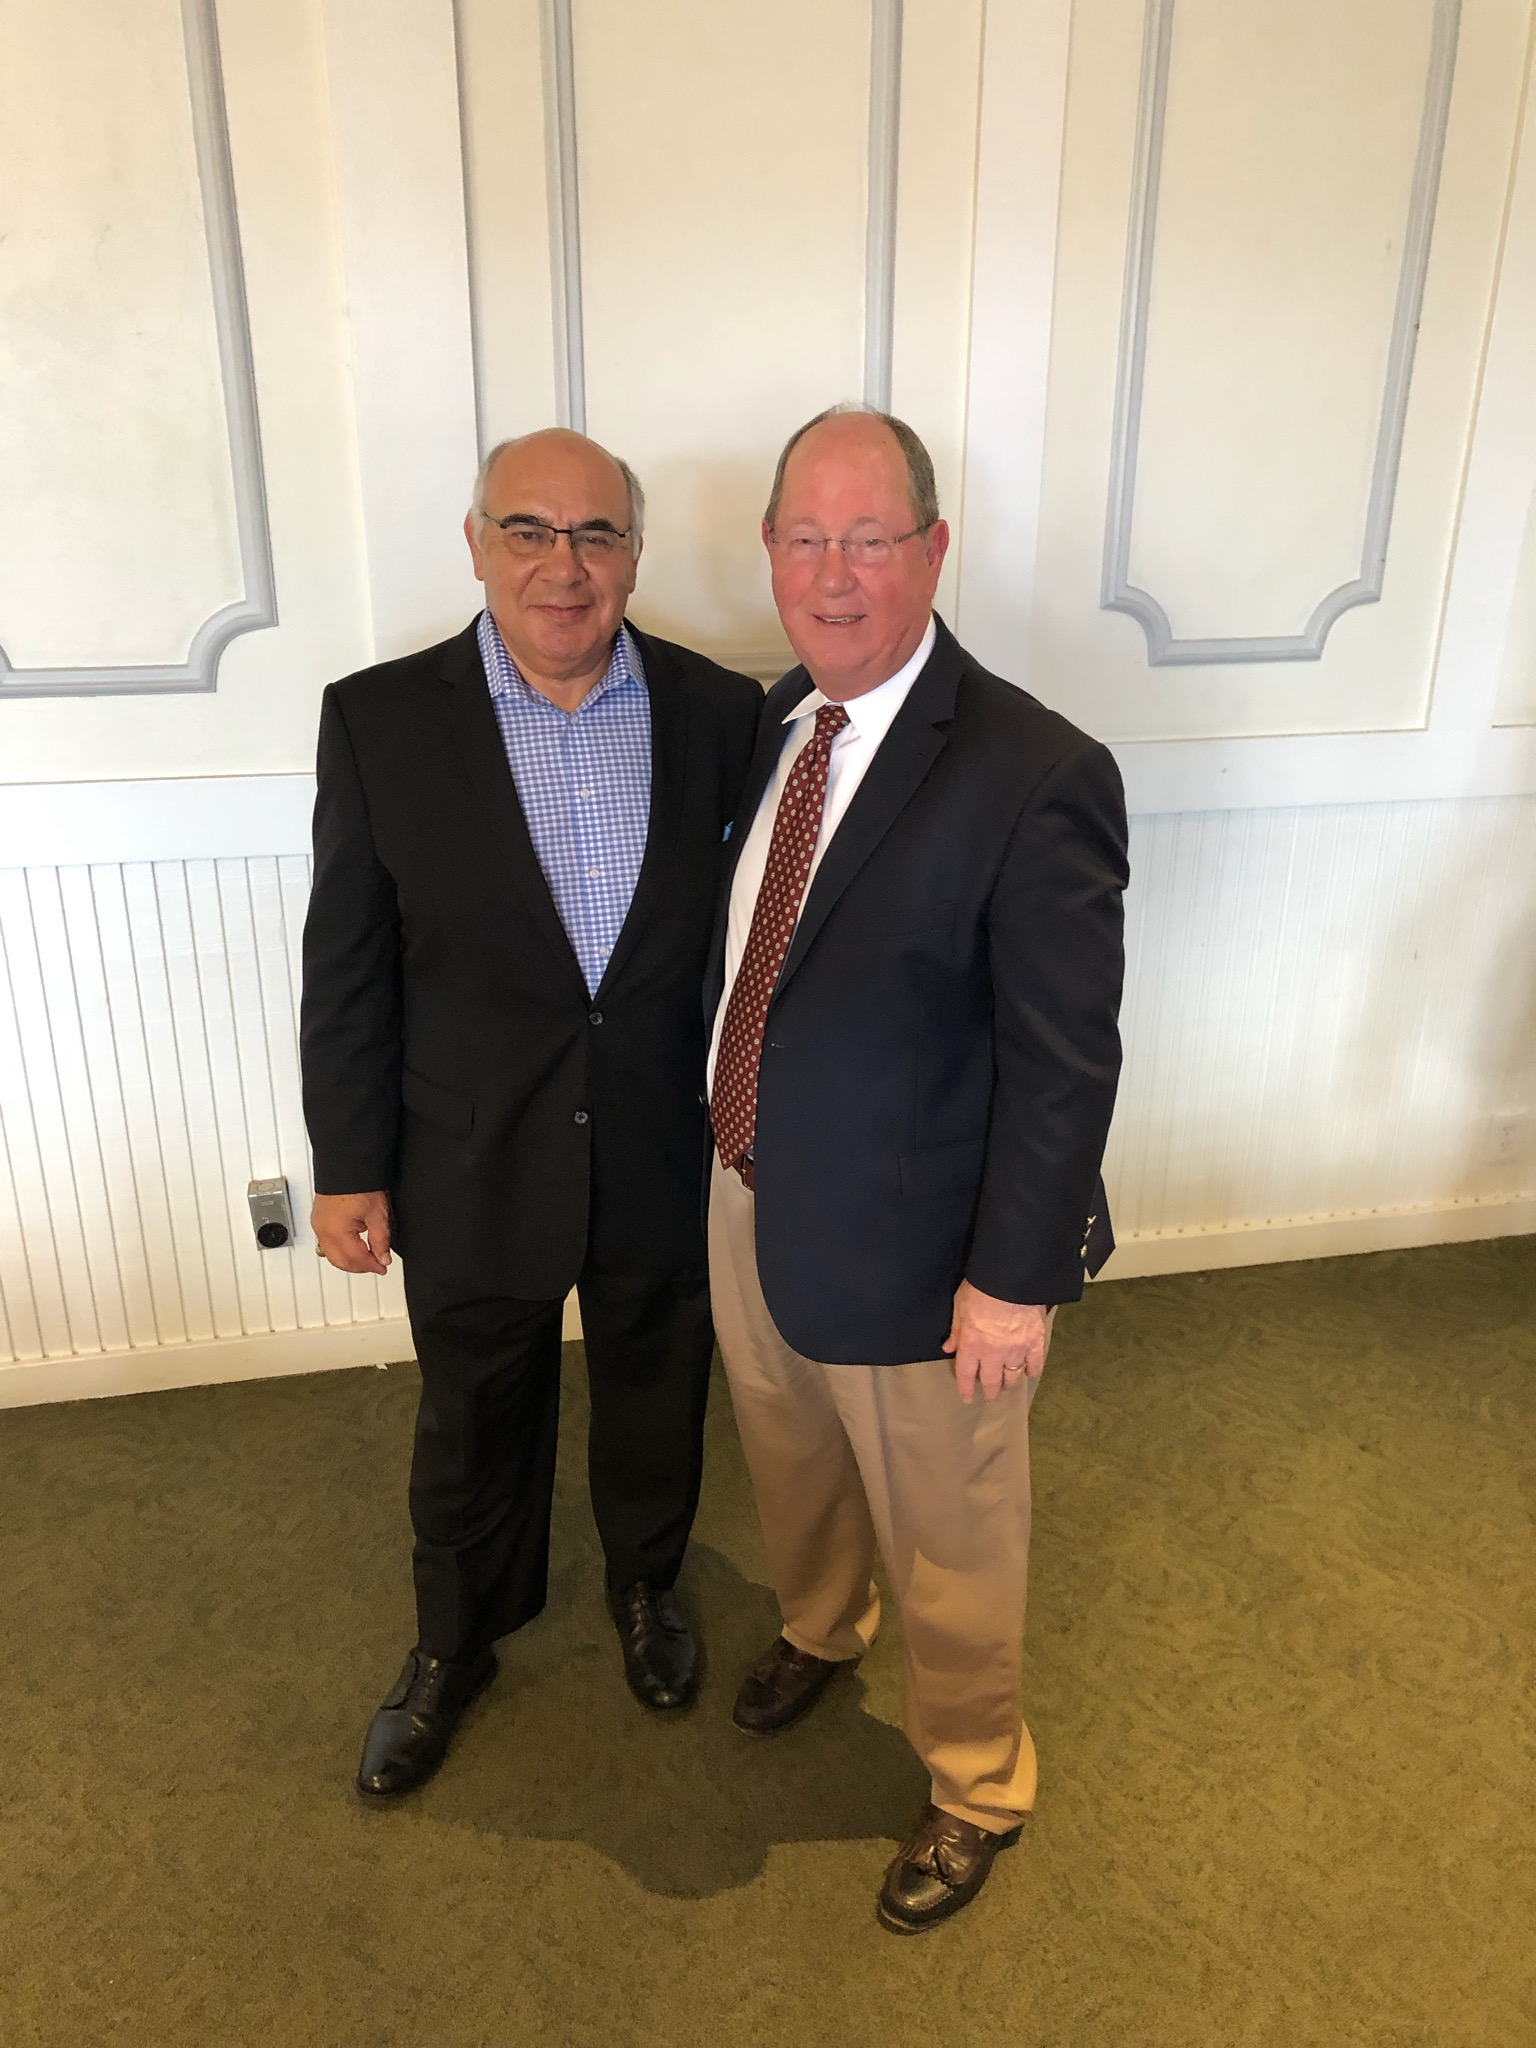 LAAPL Luncheon_3-21-2019_Photo 7.jpg